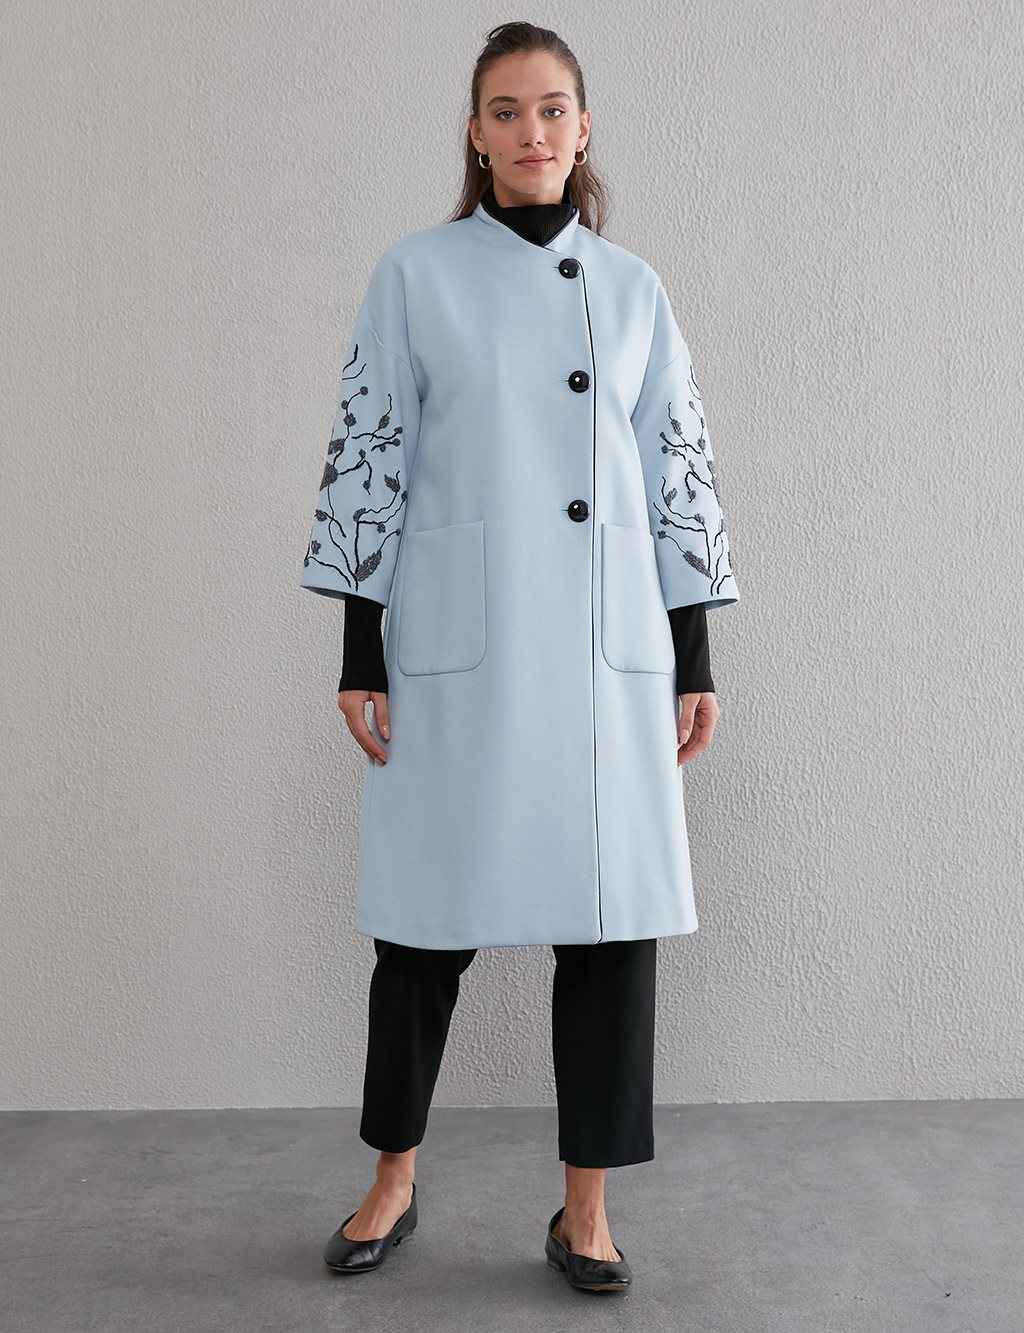 Embroidered Sleeve Pocket Coat A20 17001 Blue